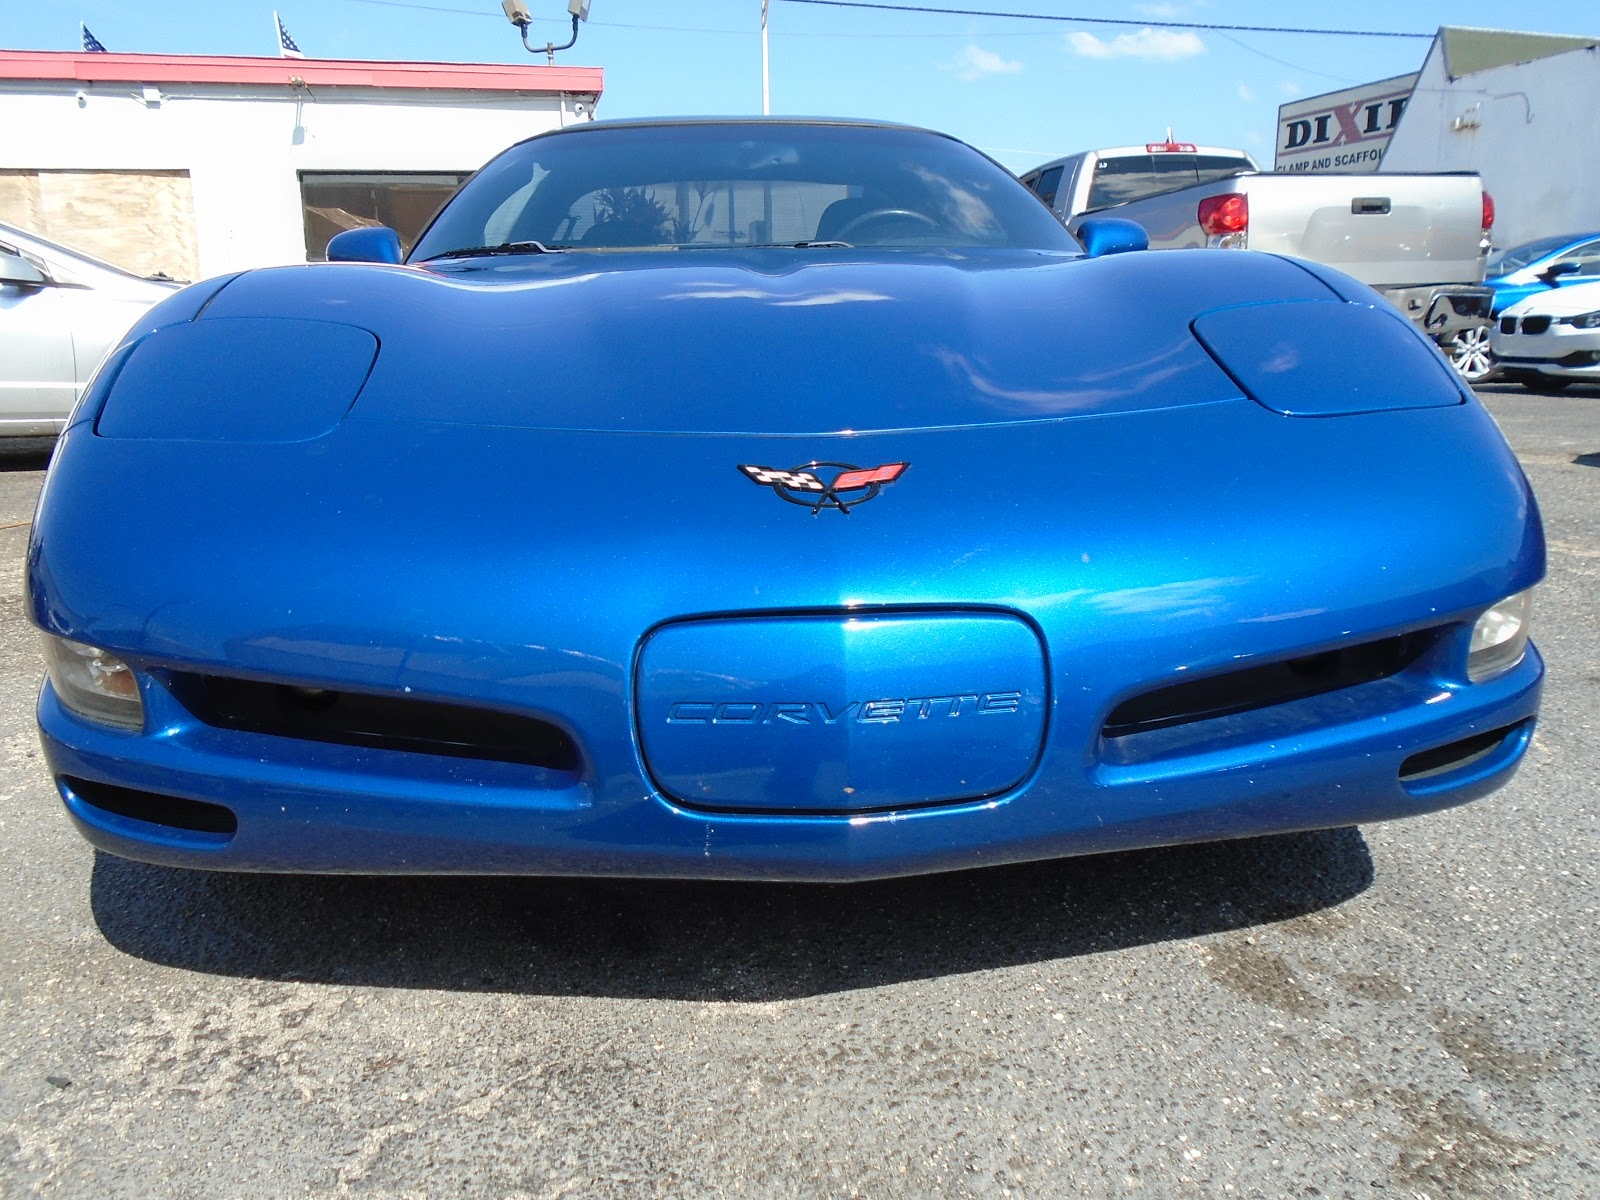 keith c jt auto cars 4399 n dixie hwy oakland park fl phone 754 265 5049 posted by here pay